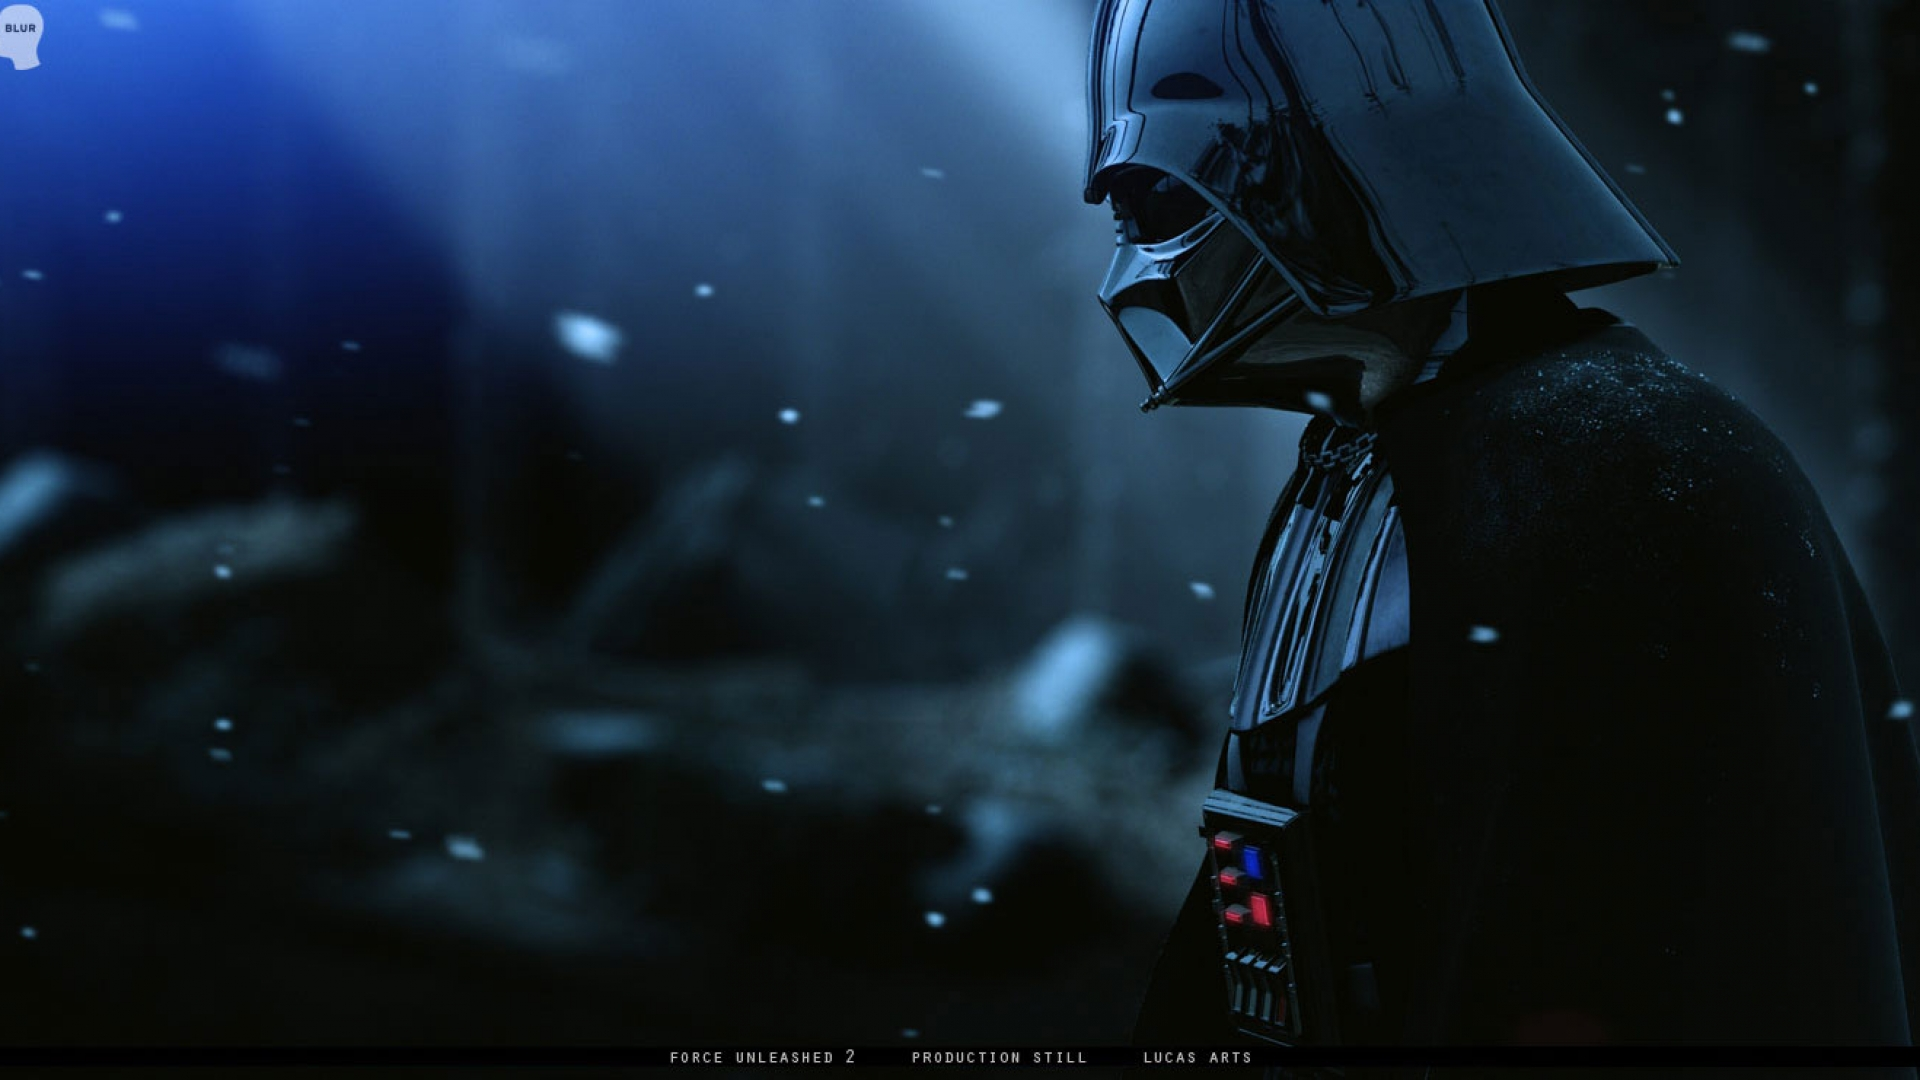 Darth-Vader-Wallpaper